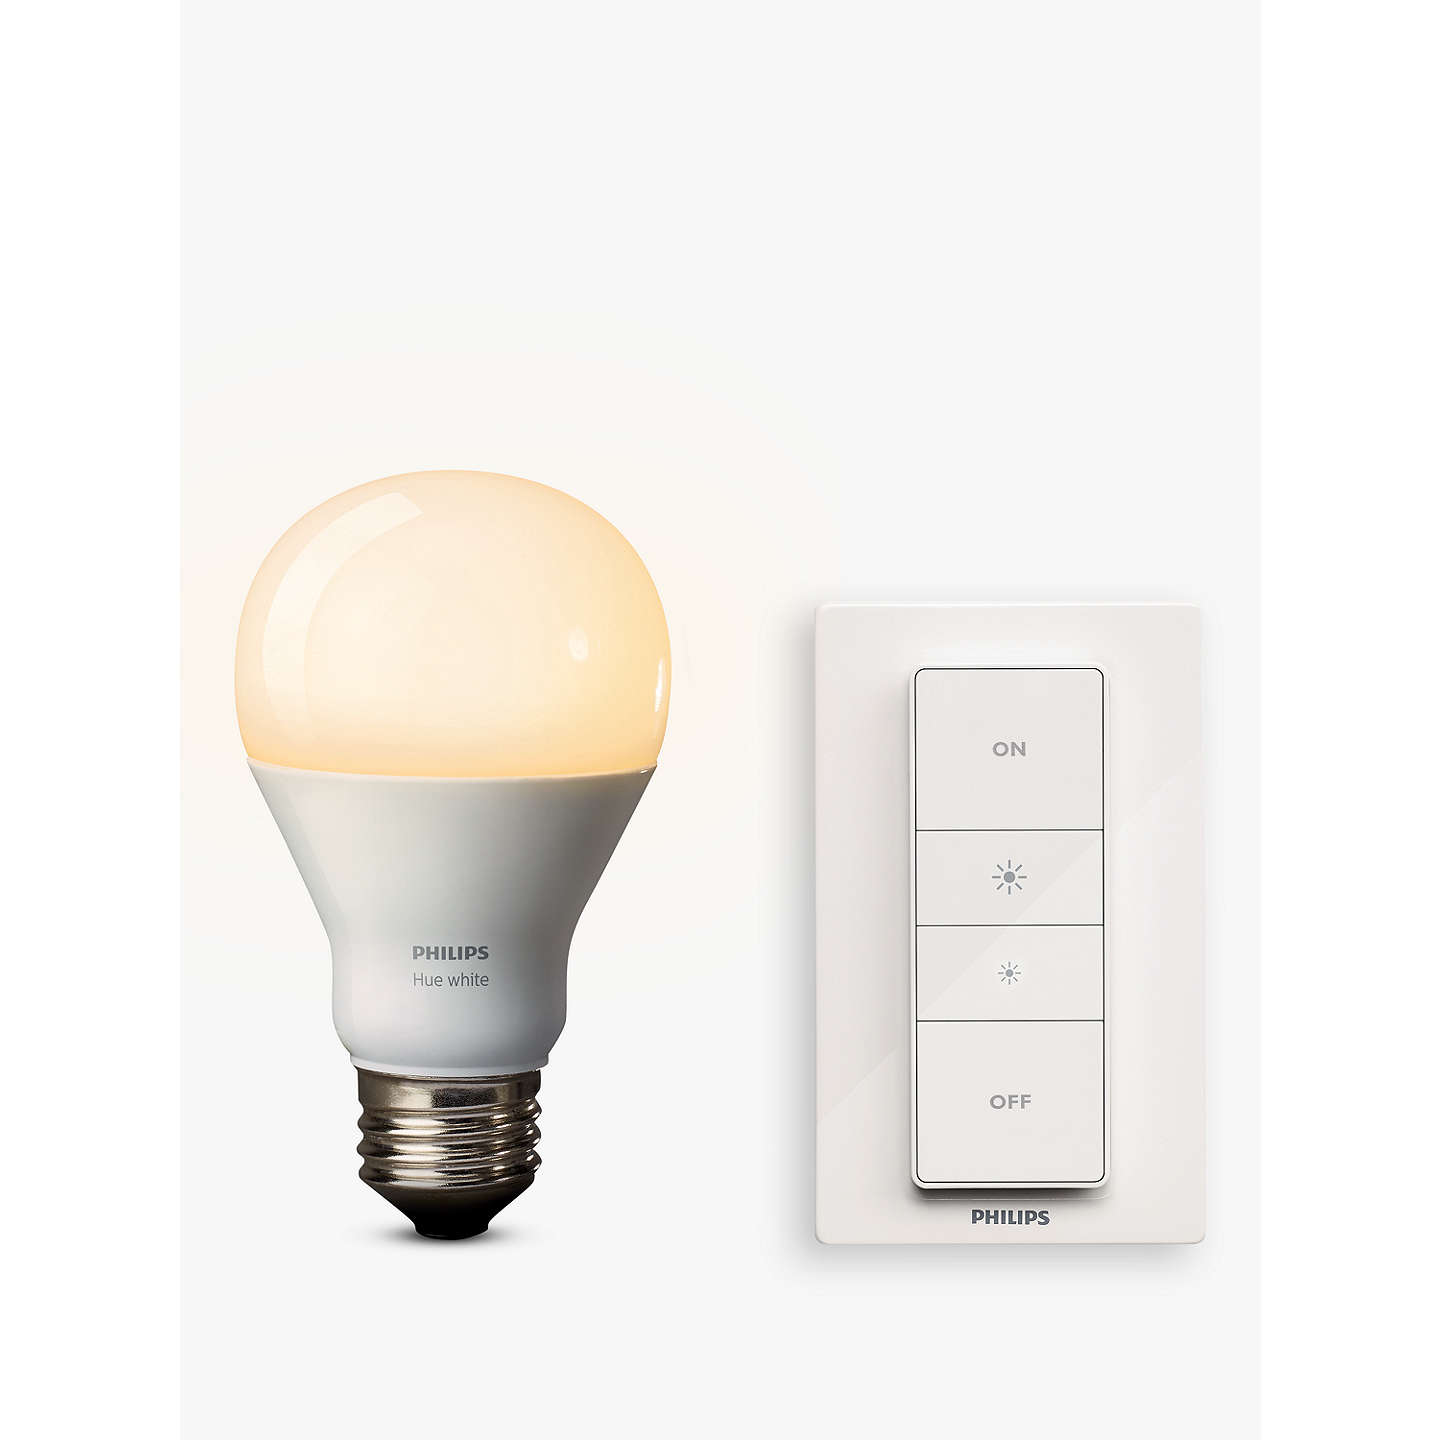 philips hue white led wireless dimming kit at john lewis. Black Bedroom Furniture Sets. Home Design Ideas